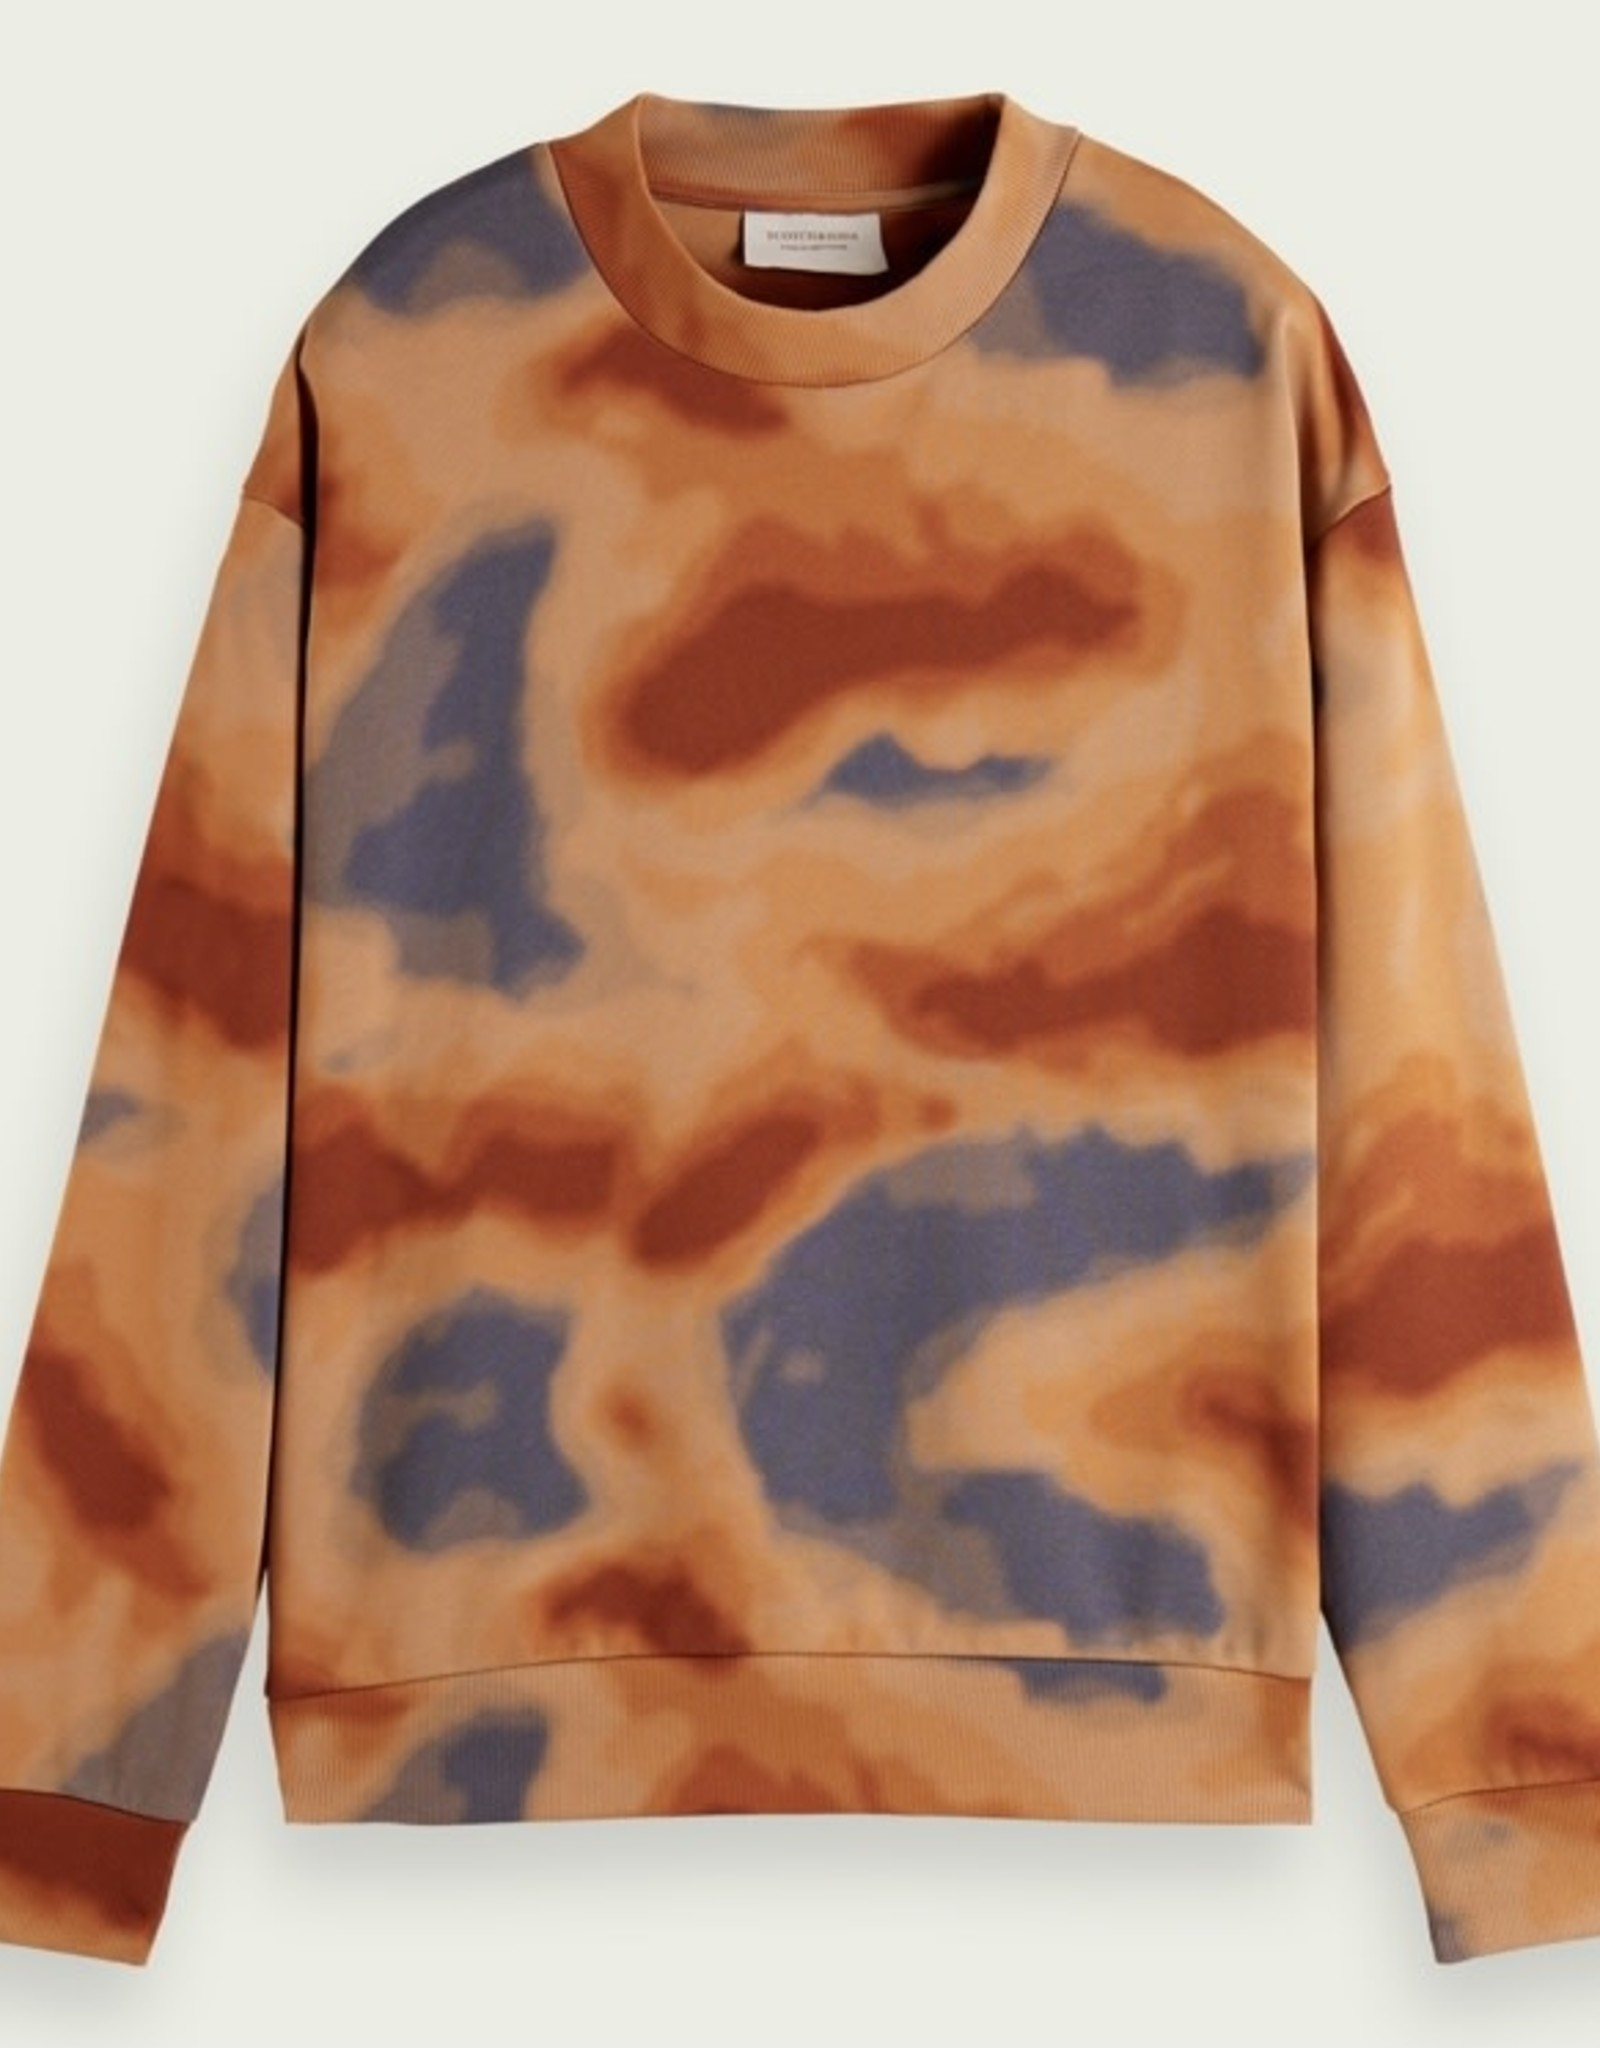 Scotch & Soda SS ALL OVER PRINT RELAXED-FIT CREWNECK ORANGE DYE